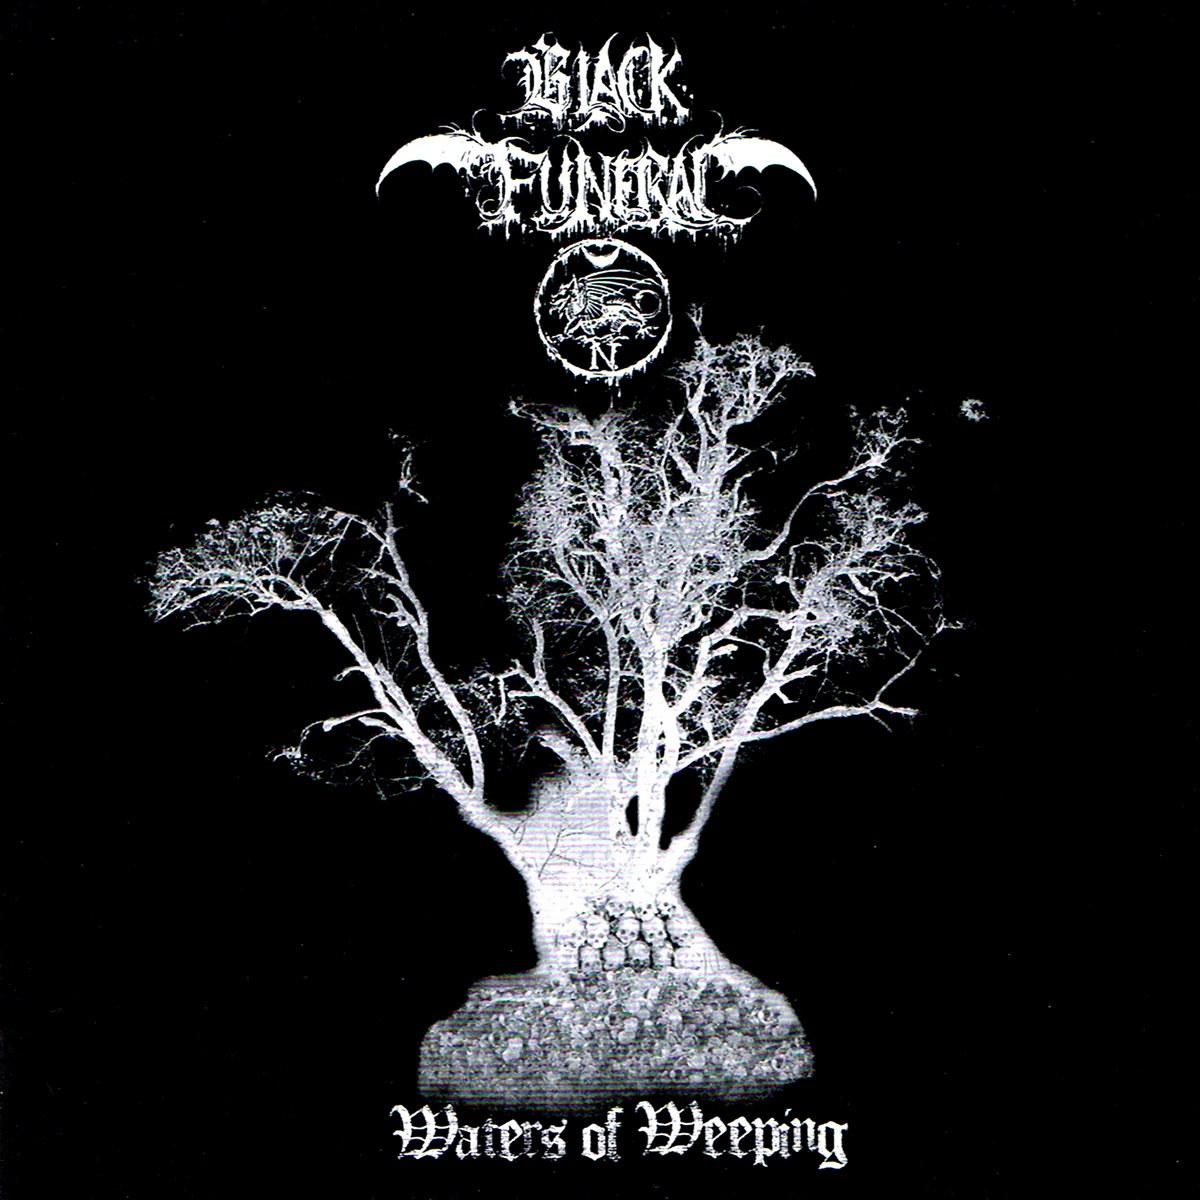 Review for Black Funeral - Waters of Weeping